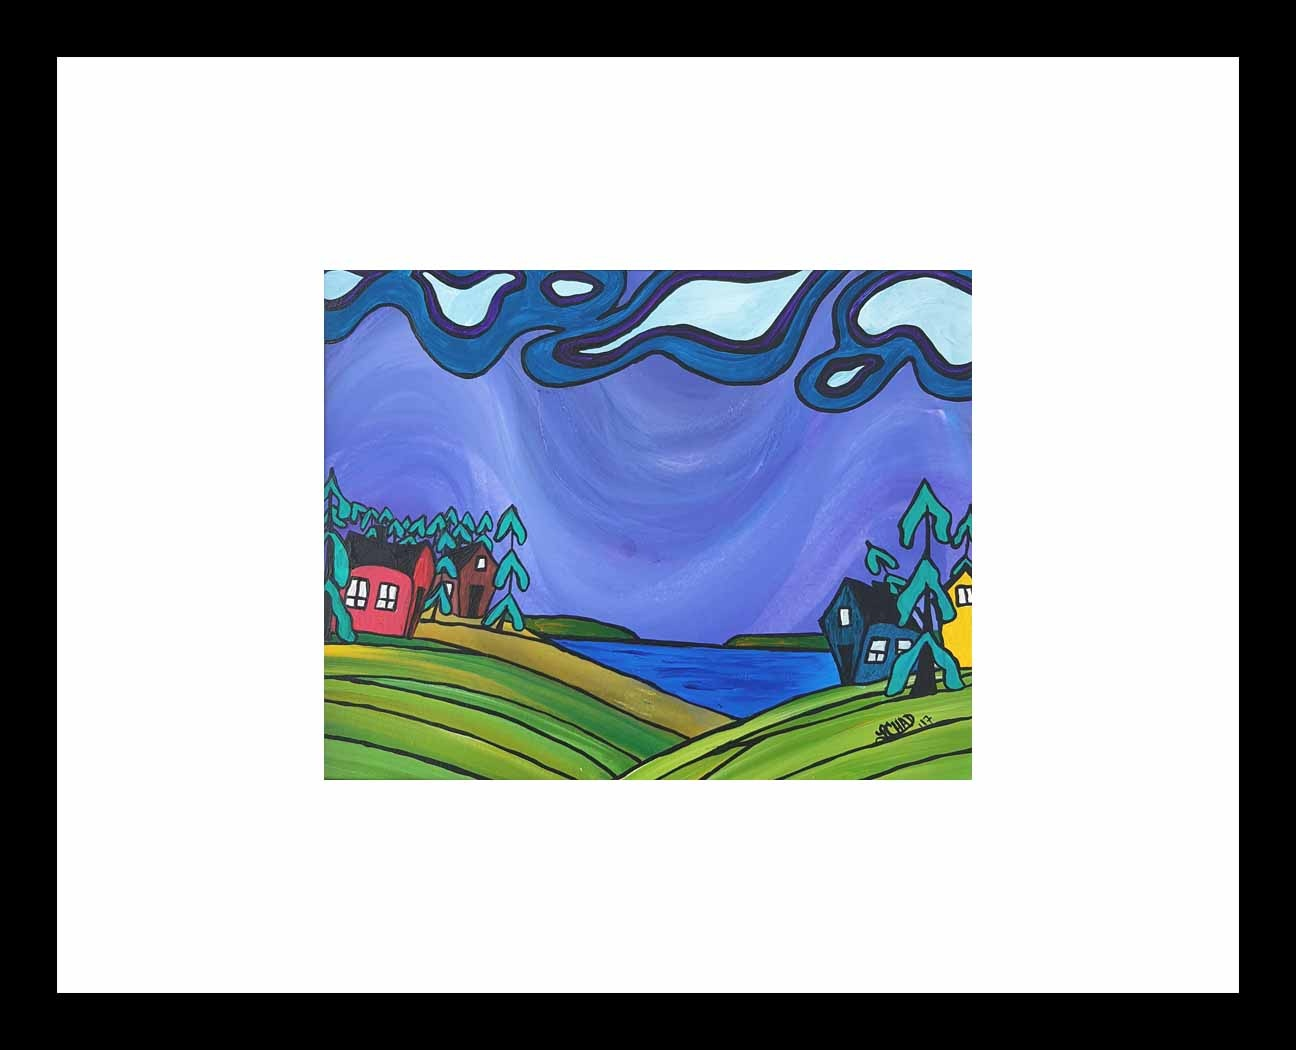 """Living Lakeside"" [2017] Image 9.5"" x 7.5"" Framed 20"" x 20"" Acrylic on 246 lb. paper $200.00"